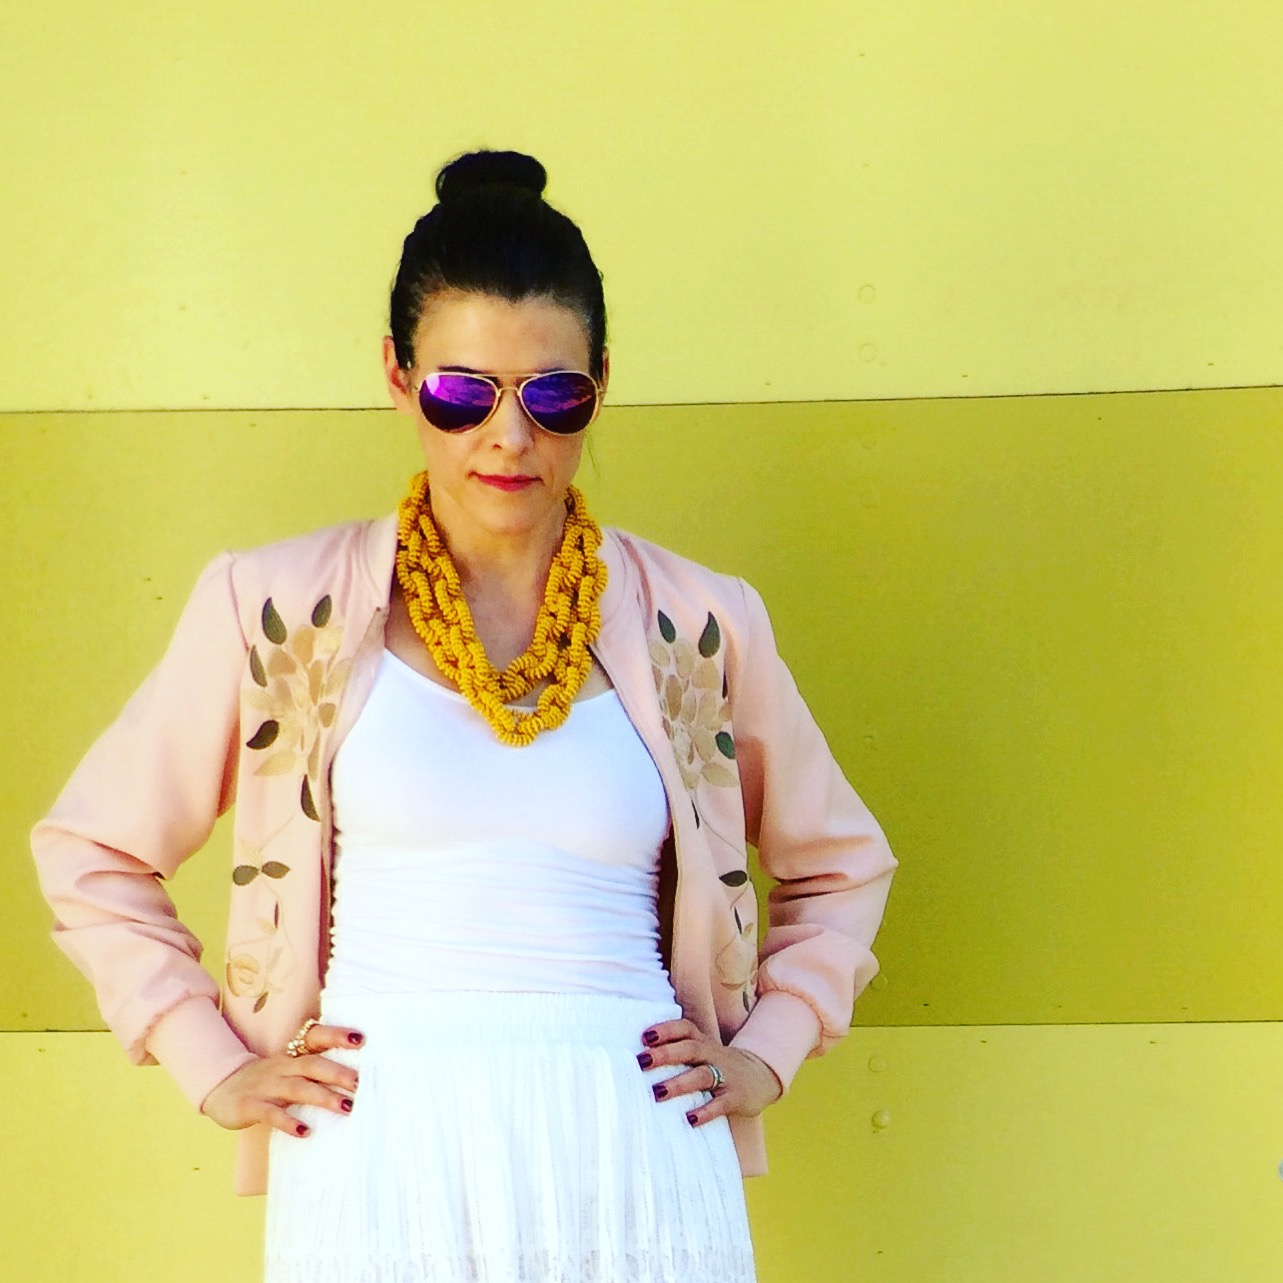 with a pink bomber jacket